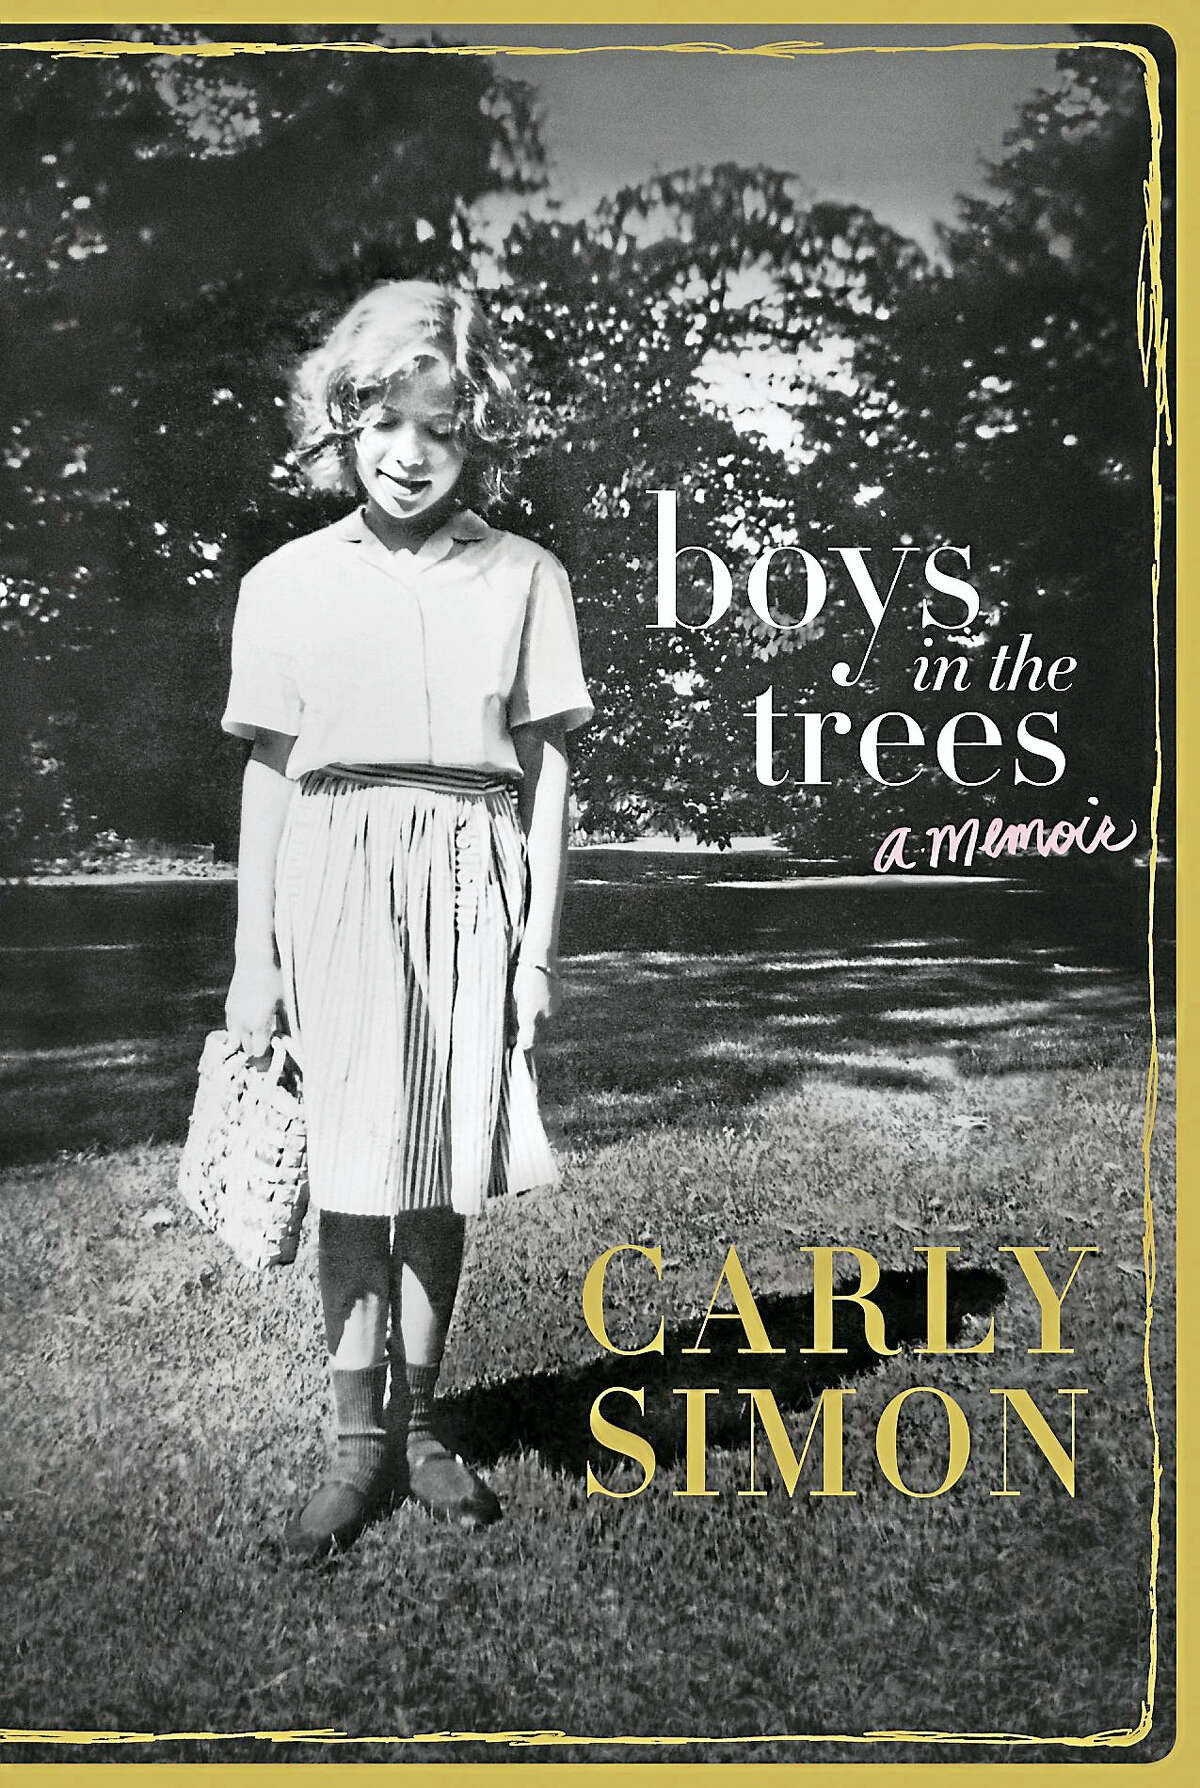 """CONTRIBUTED PHOTOCARLY SIMON IN MADISONSinger-songwriter Carly Simon talks about her memoir """"Boys in the Trees"""" at 4 p.m. Nov. 13 at the First Congregational Church of Madison, 26 Meetinghouse Lane, on the Green. The event is a benefit for the nonprofit Read to Grow and will include a book-signing. Each $65 ticket includes a paperback copy of her memoir; $50 of the cost is a tax-deductible donation. Reservations are required; tickets will not be mailed. Go to www.readtogrow.org/carly, www.readtogrow.org, 203-488-6800 or events@readtogrow.org. Read to Grow is an early children literacy program in Branford that serves the state."""